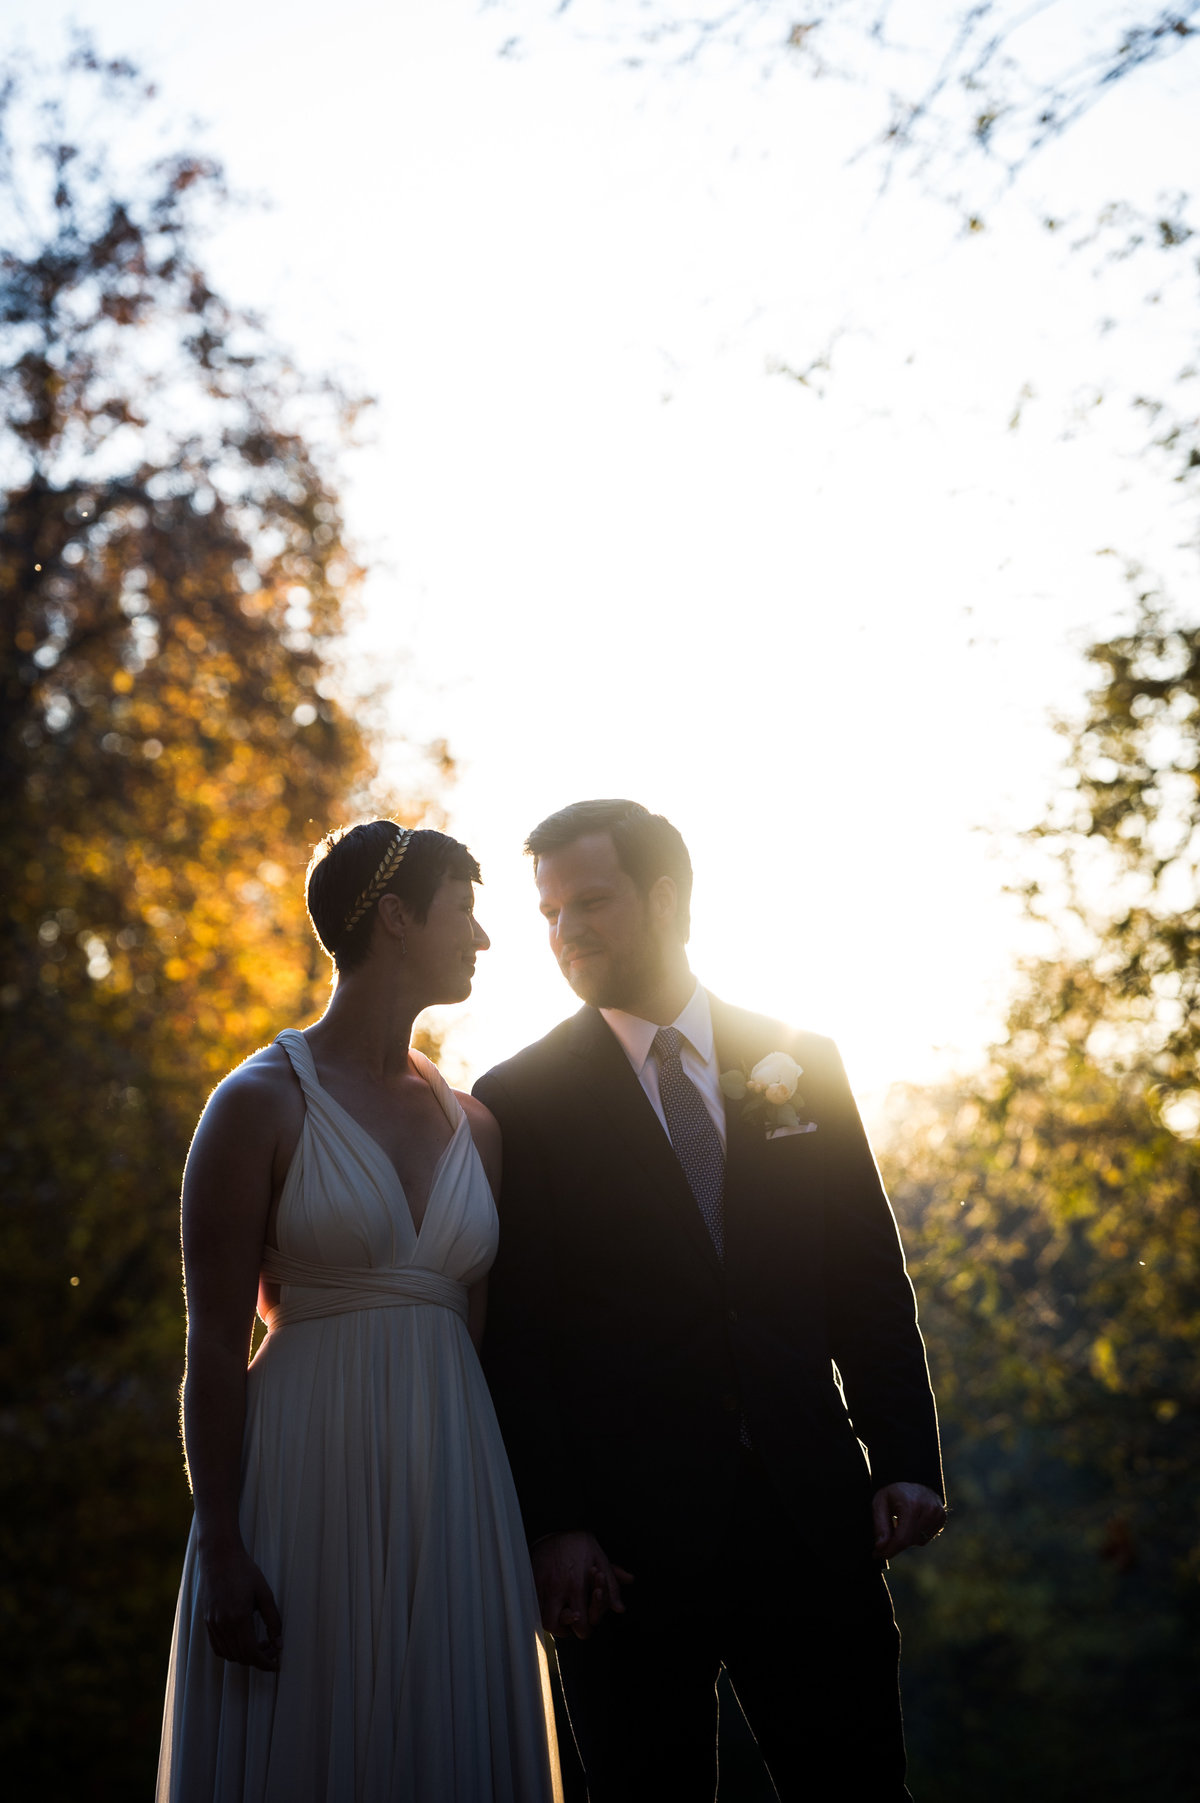 Bride and groom in silhouette, wedding day, Charlottesville, VA.